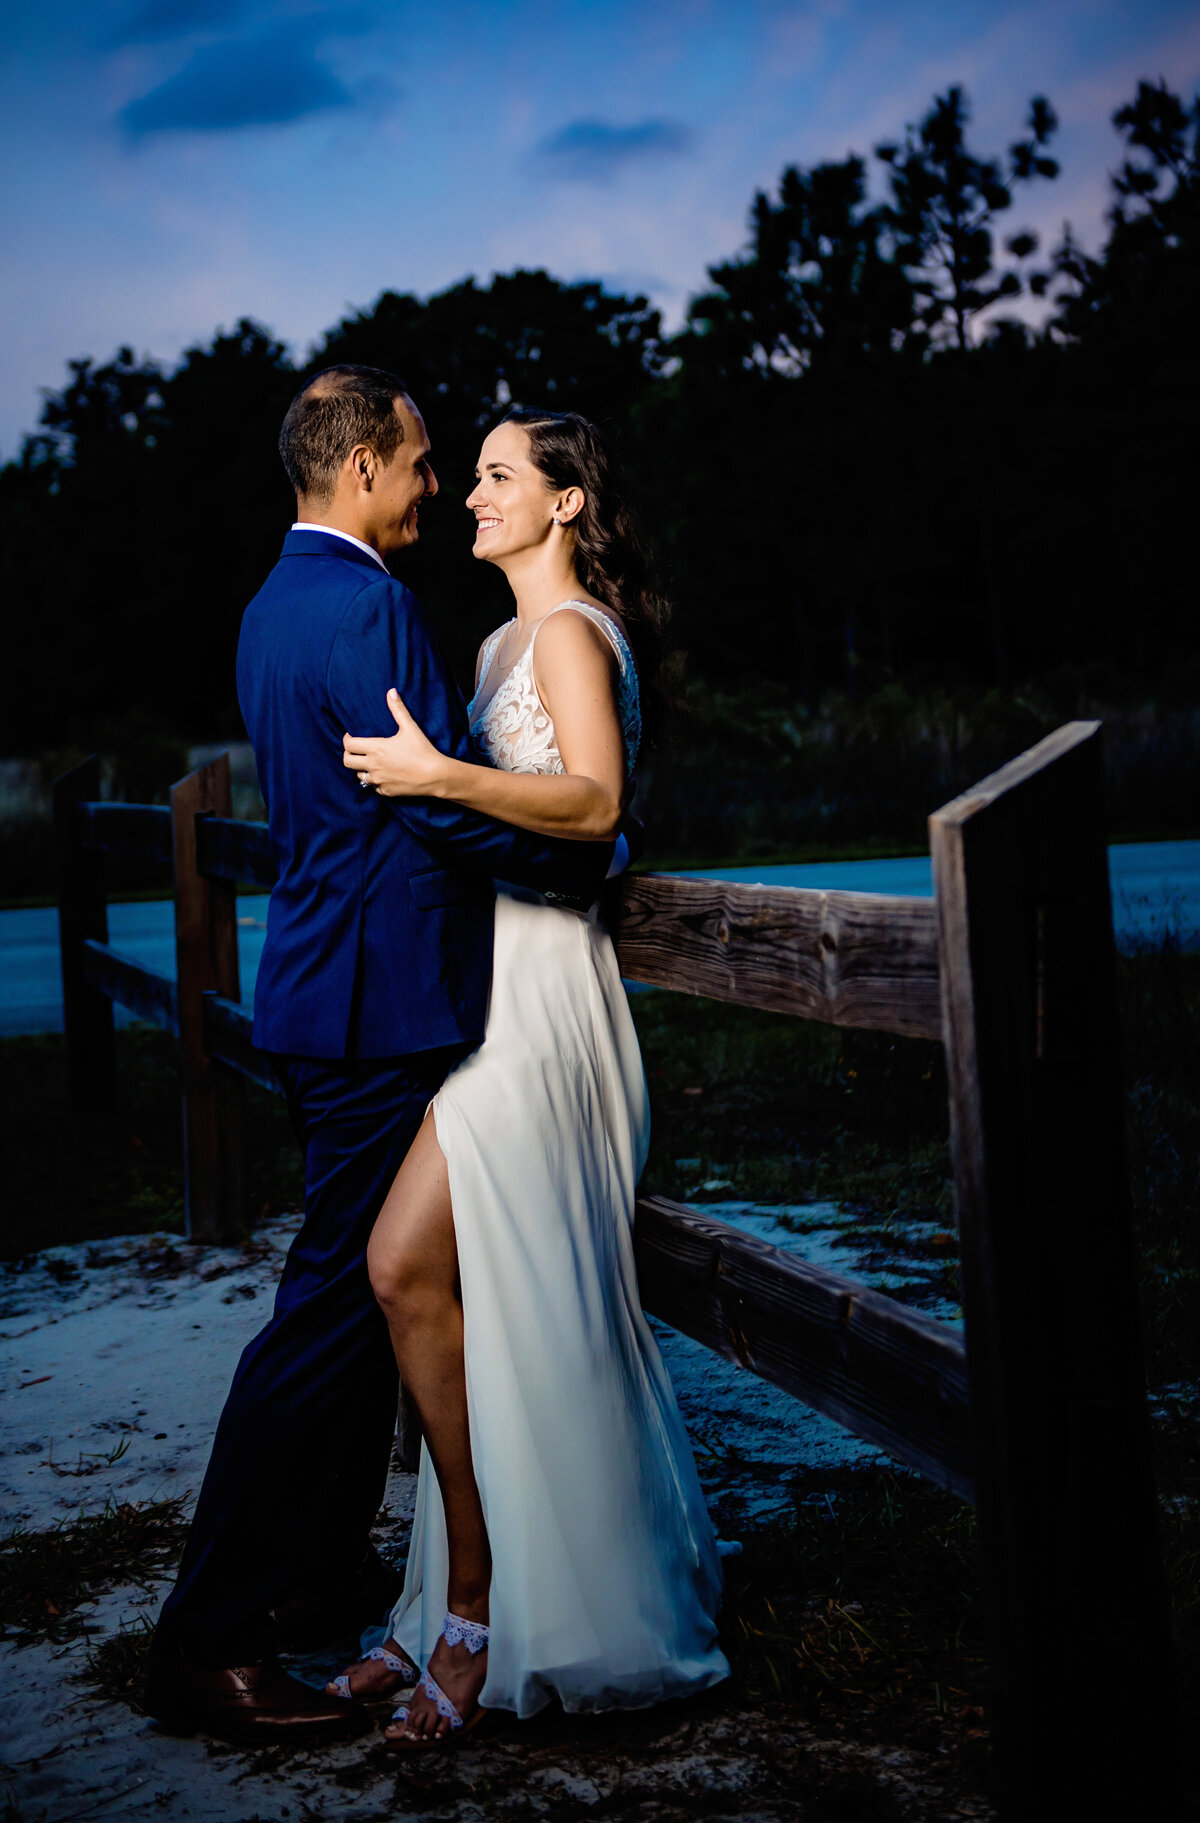 SH-Wedding-Photographerfavorite-94